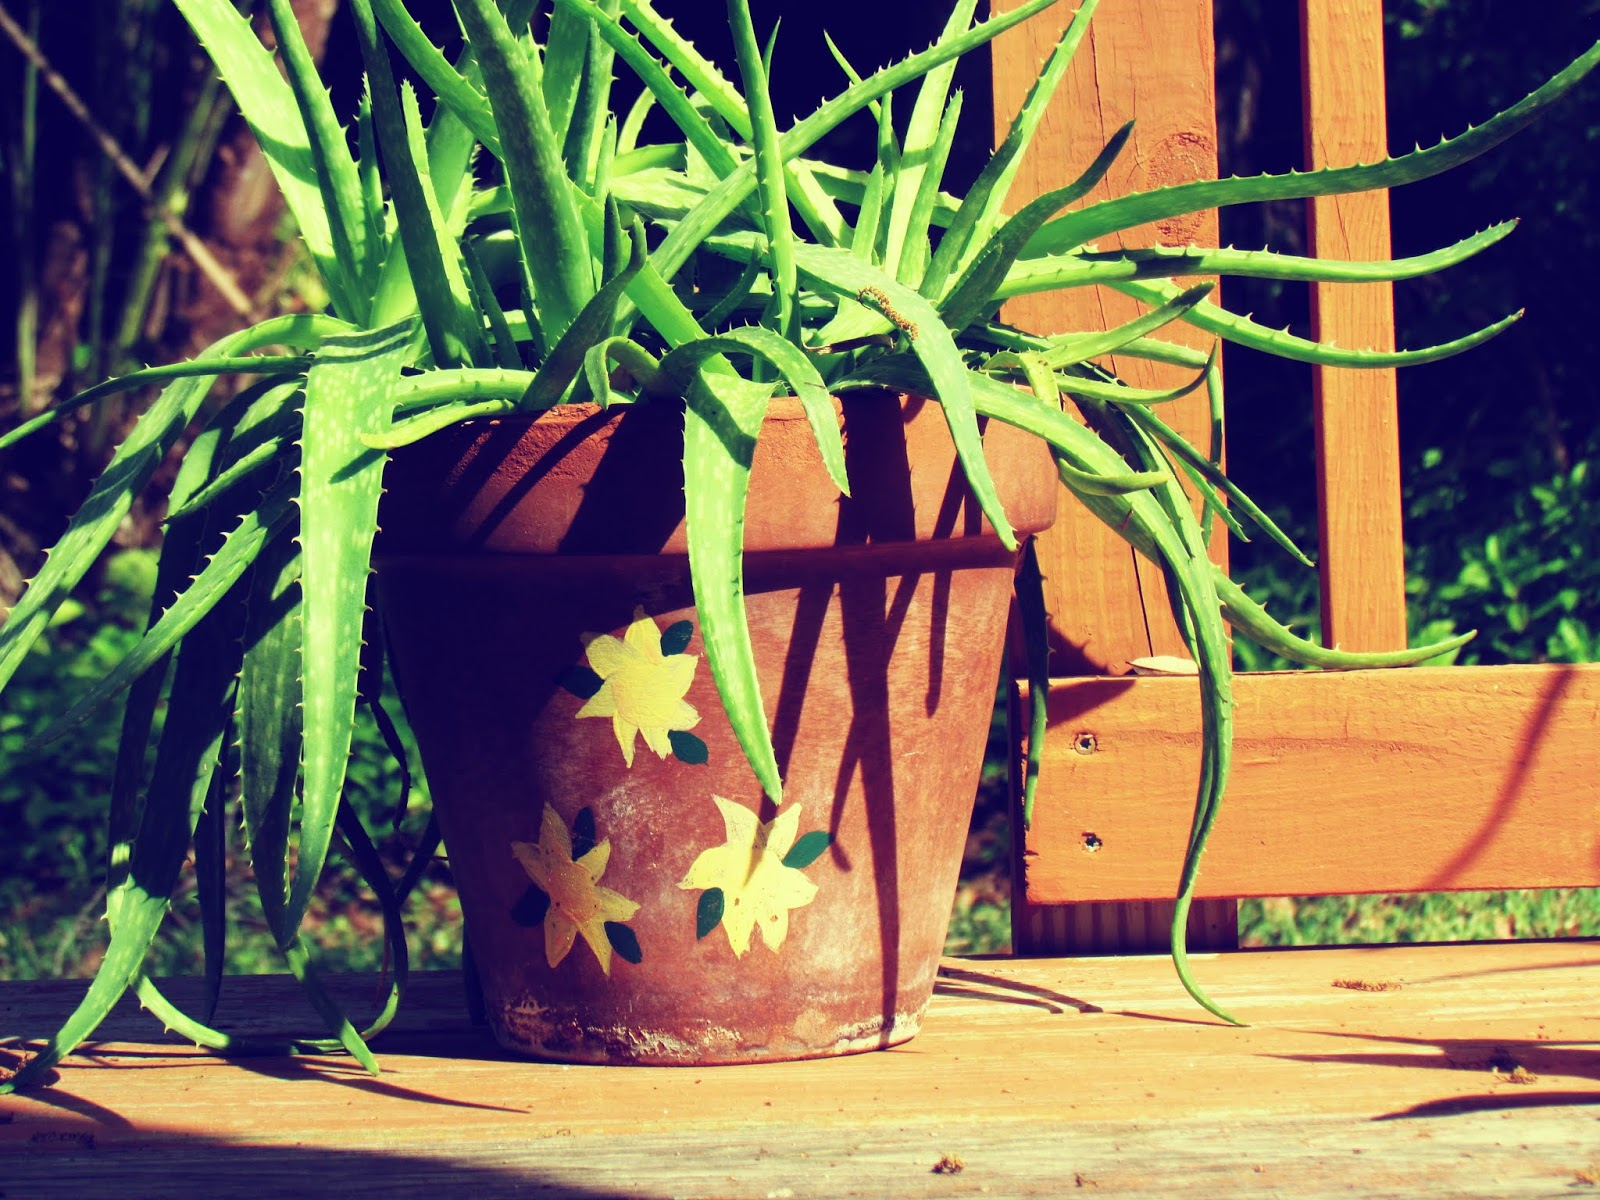 Aloe vera plant sitting in the sun on a Florida porch in the backdrop of mother nature + plant pottery painted with yellow flowers in the backyard